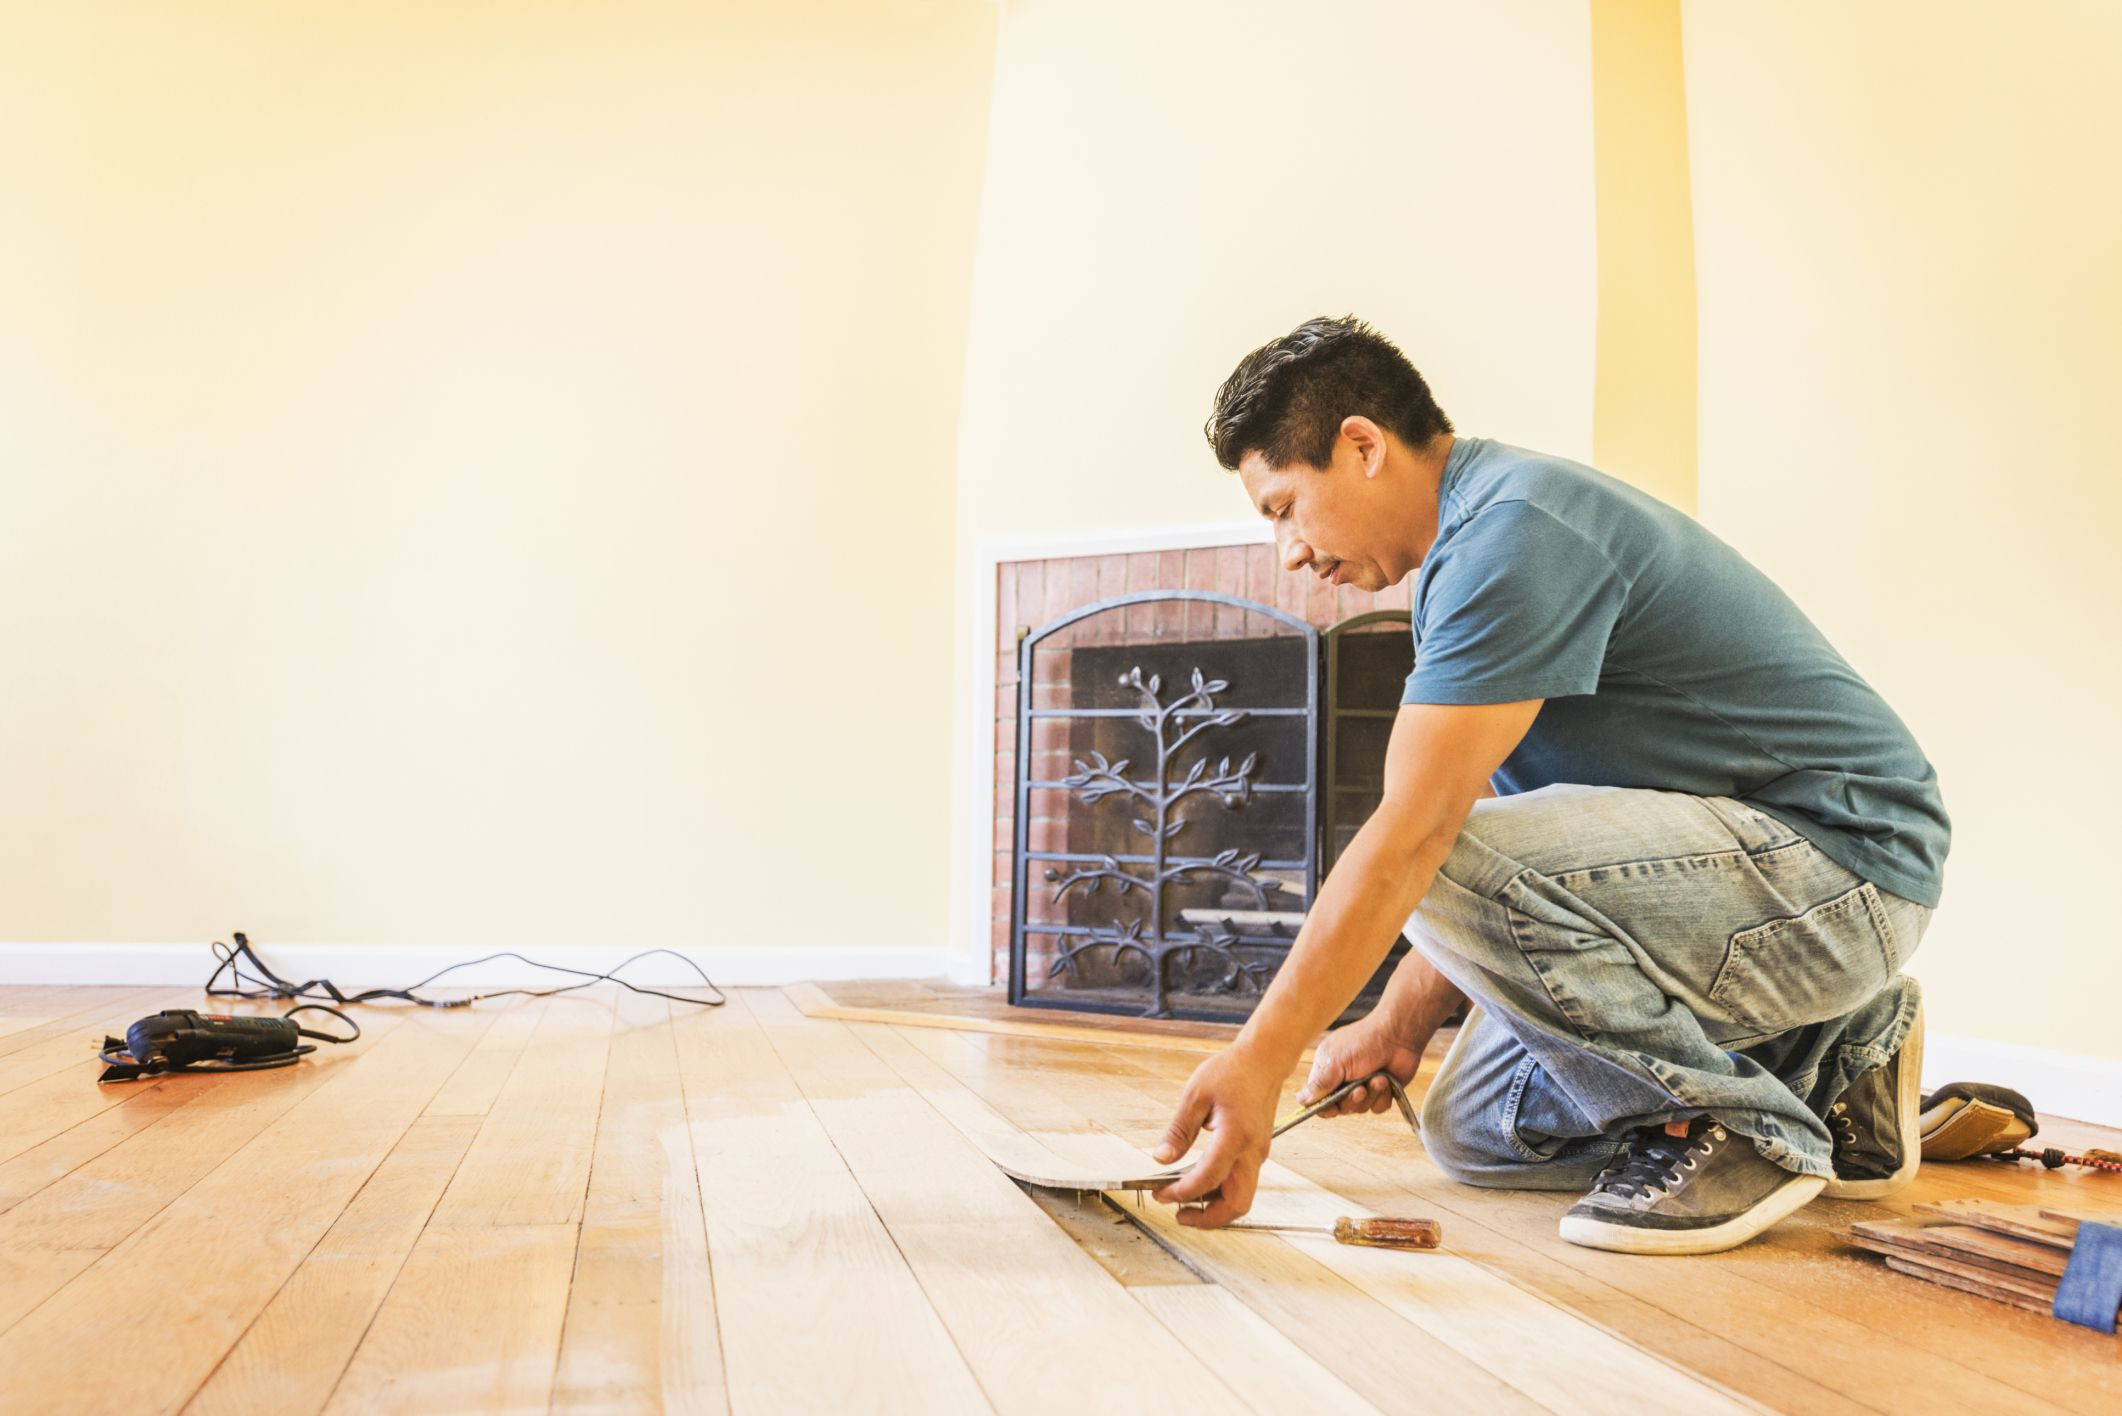 replace section of hardwood floor of solid hardwood flooring costs for professional vs diy for installwoodflooring 592016327 56684d6f3df78ce1610a598a